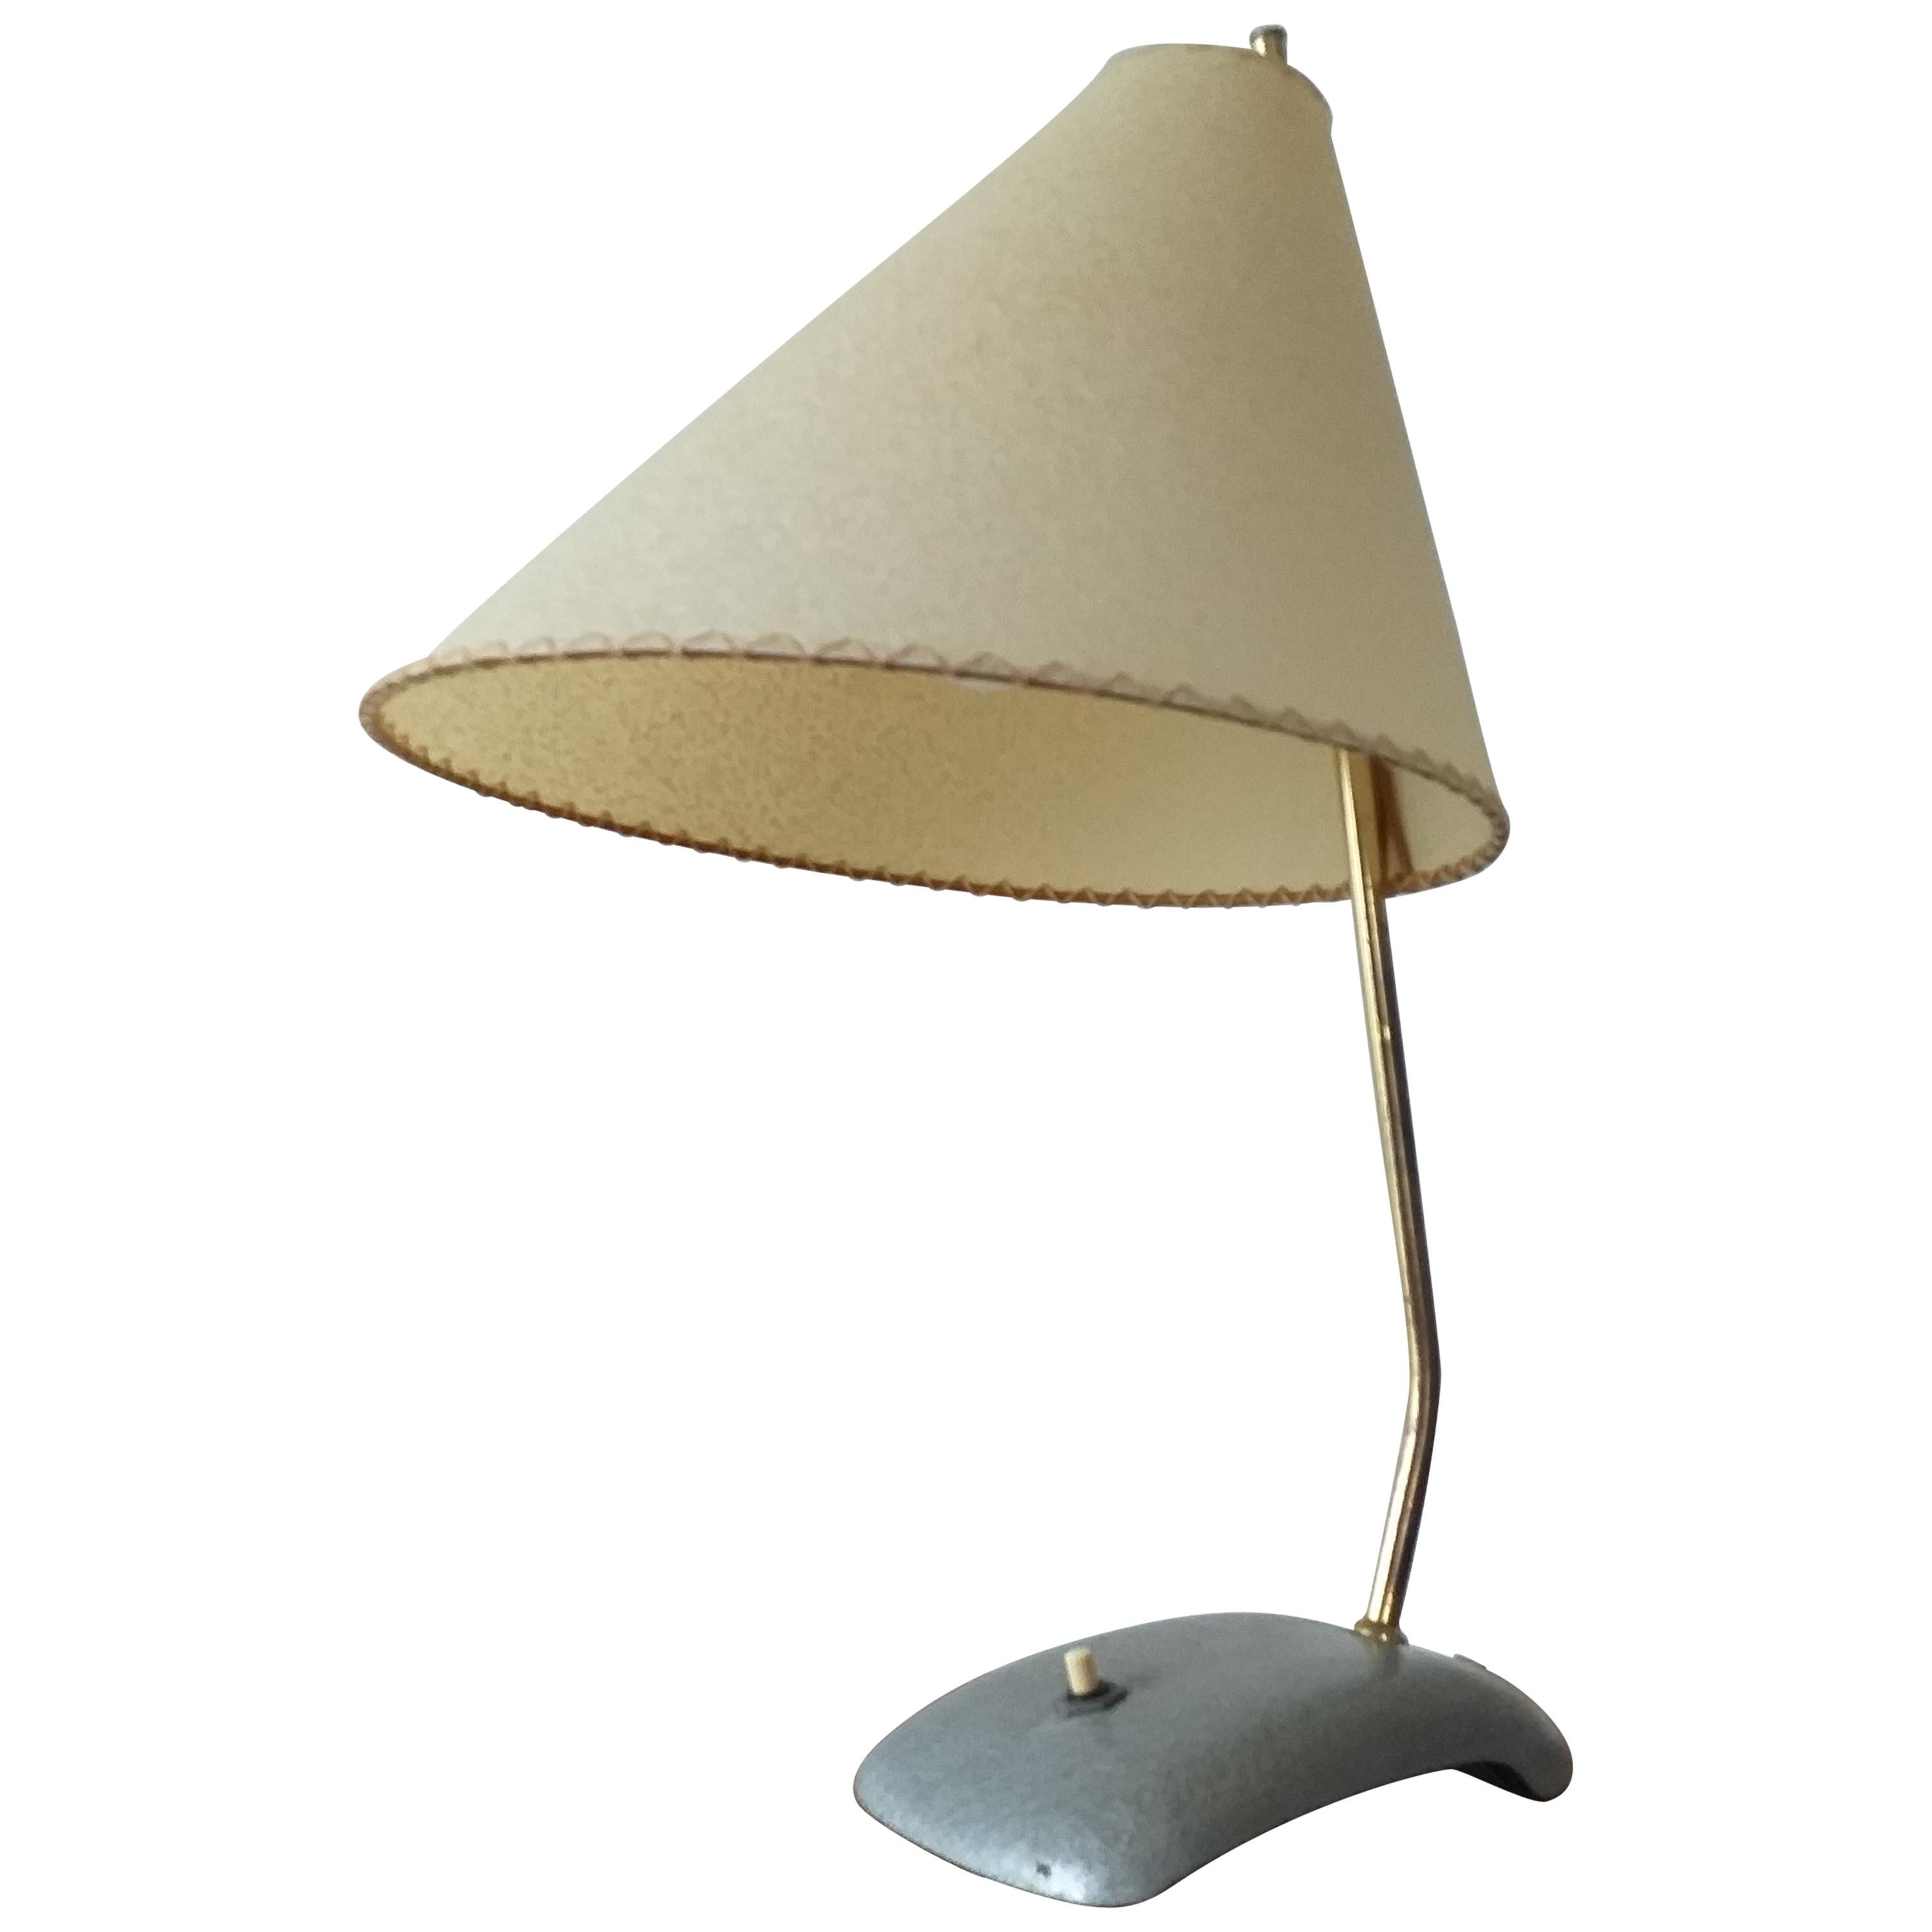 Midcentury Table lamp, Germany, 1960s